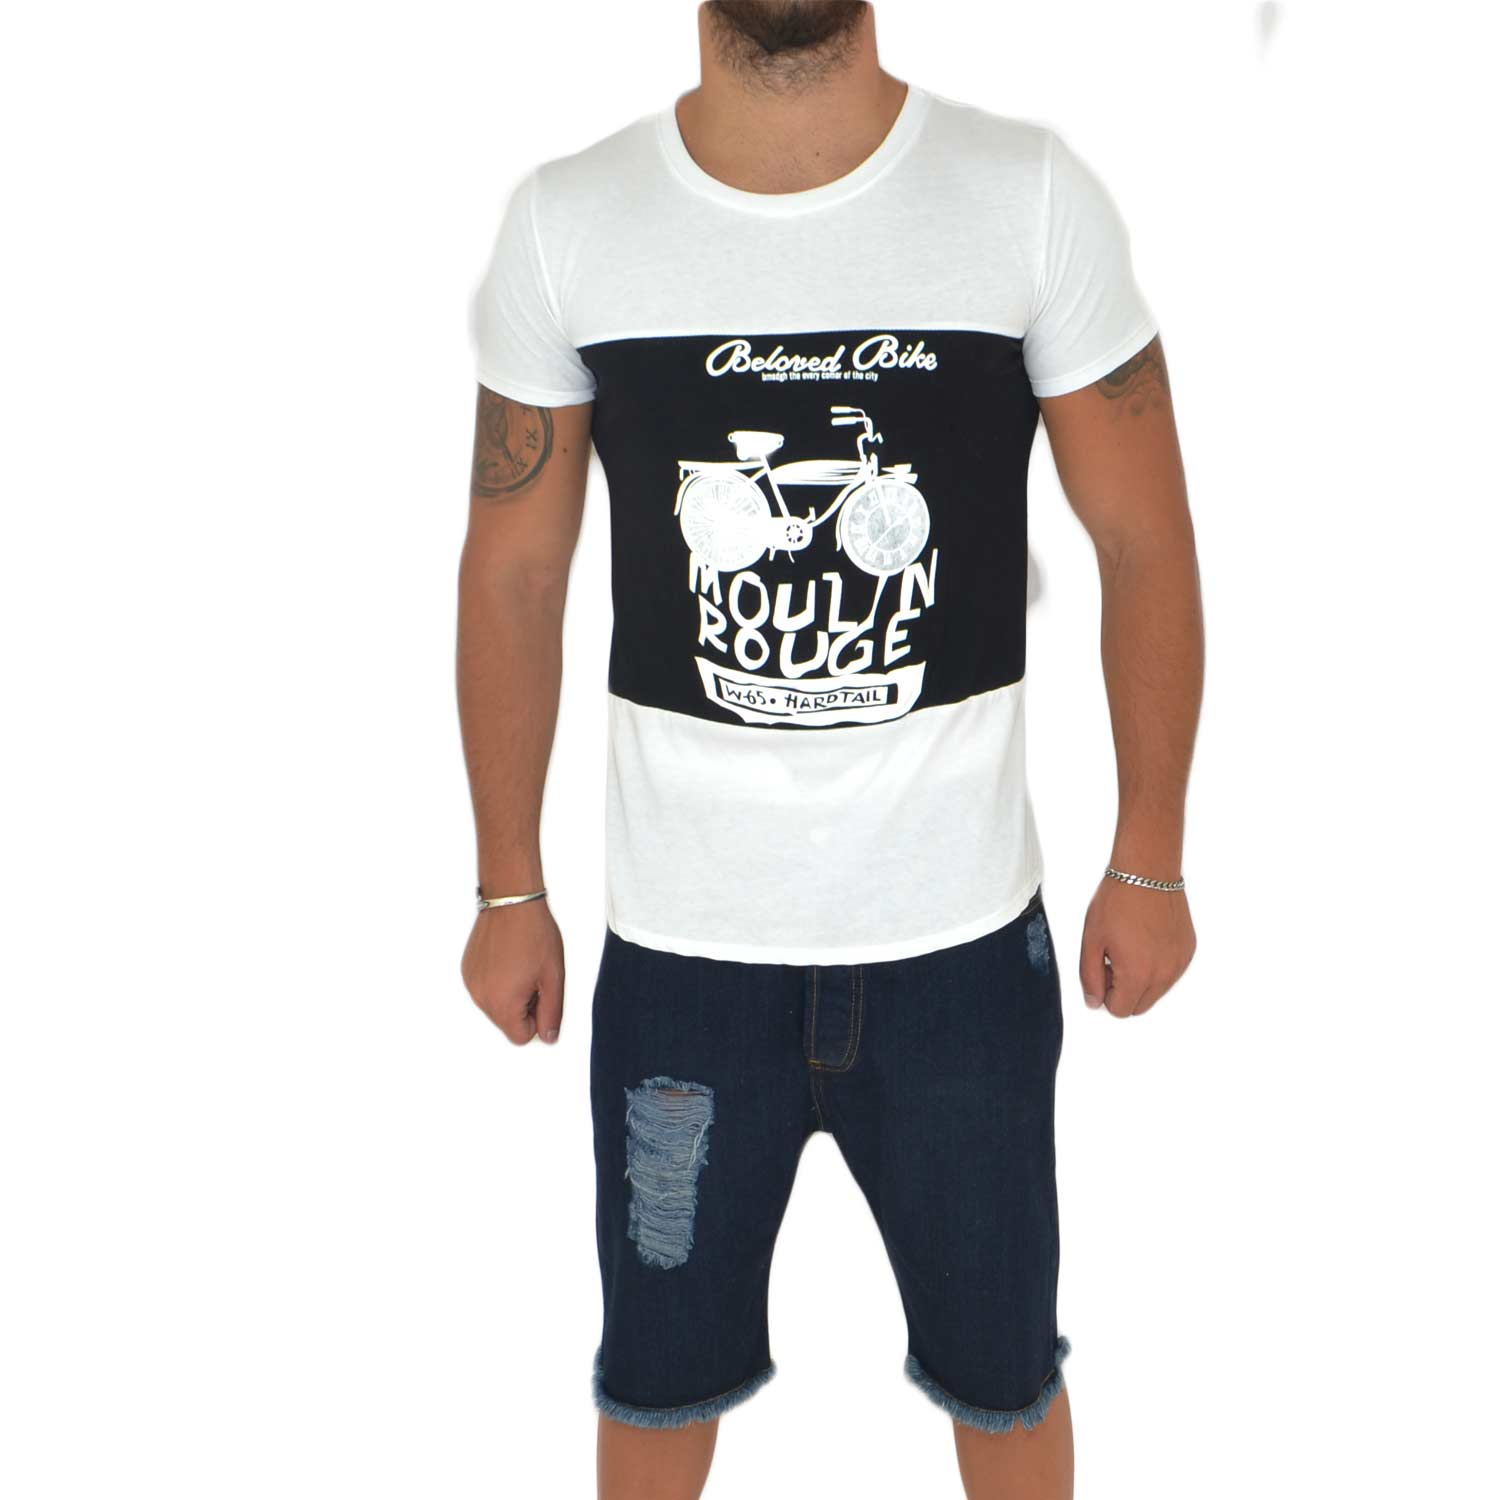 T-Shirt maglietta moulin  rouge con collo rotondo e maniche corte con design popular cucitoartigianalmente made in italy